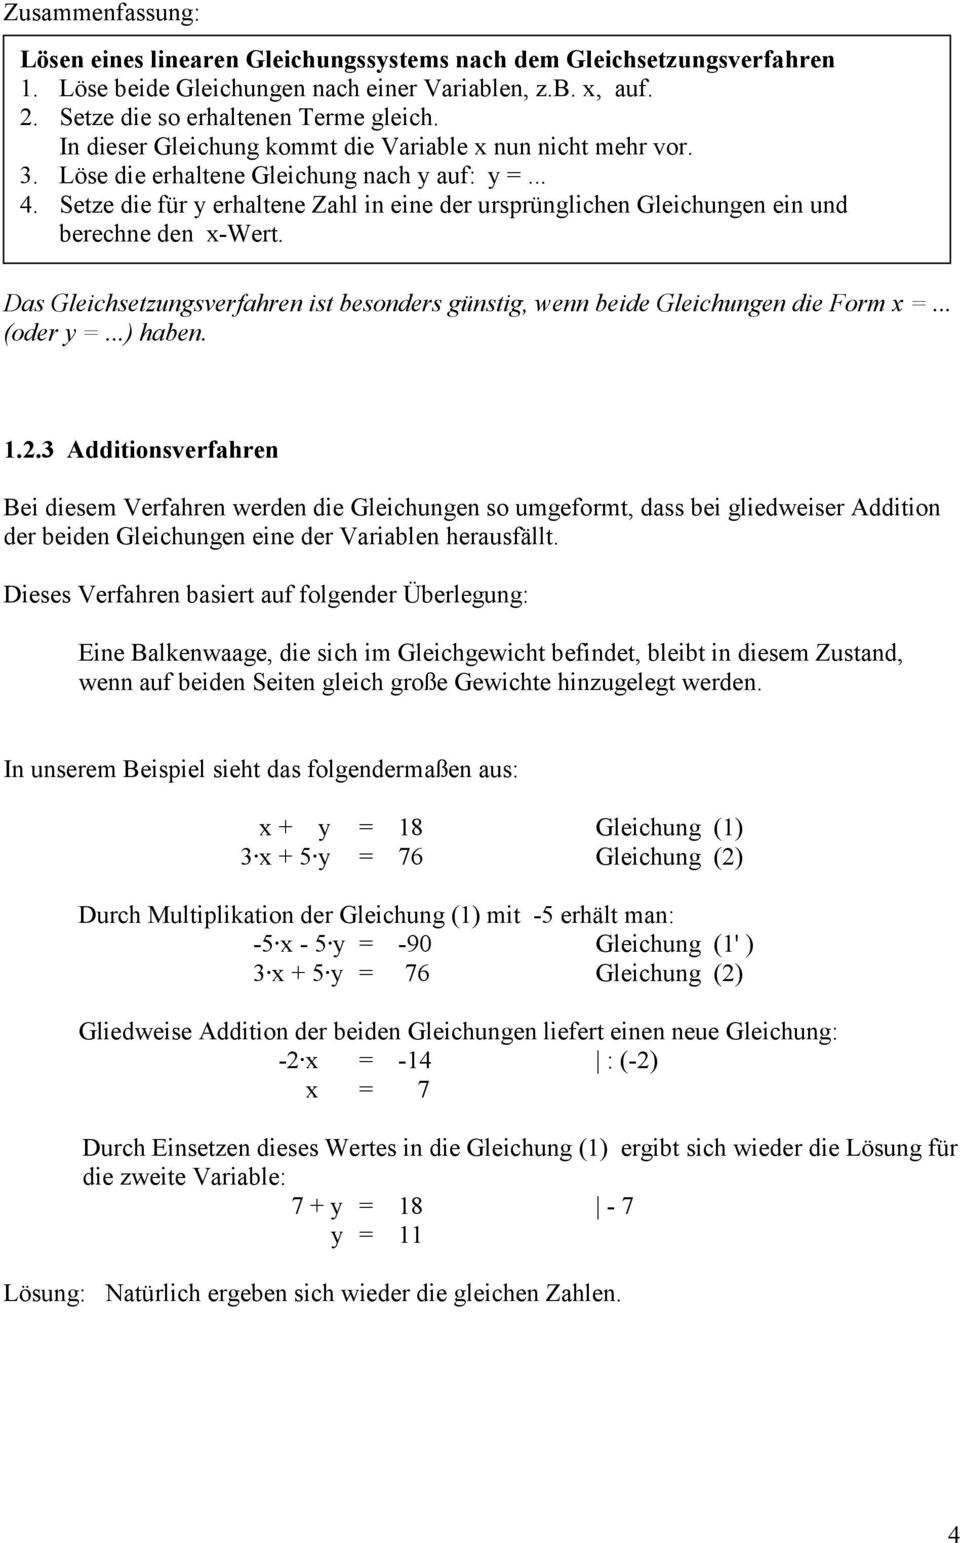 Lineare Gleichungssysteme - PDF